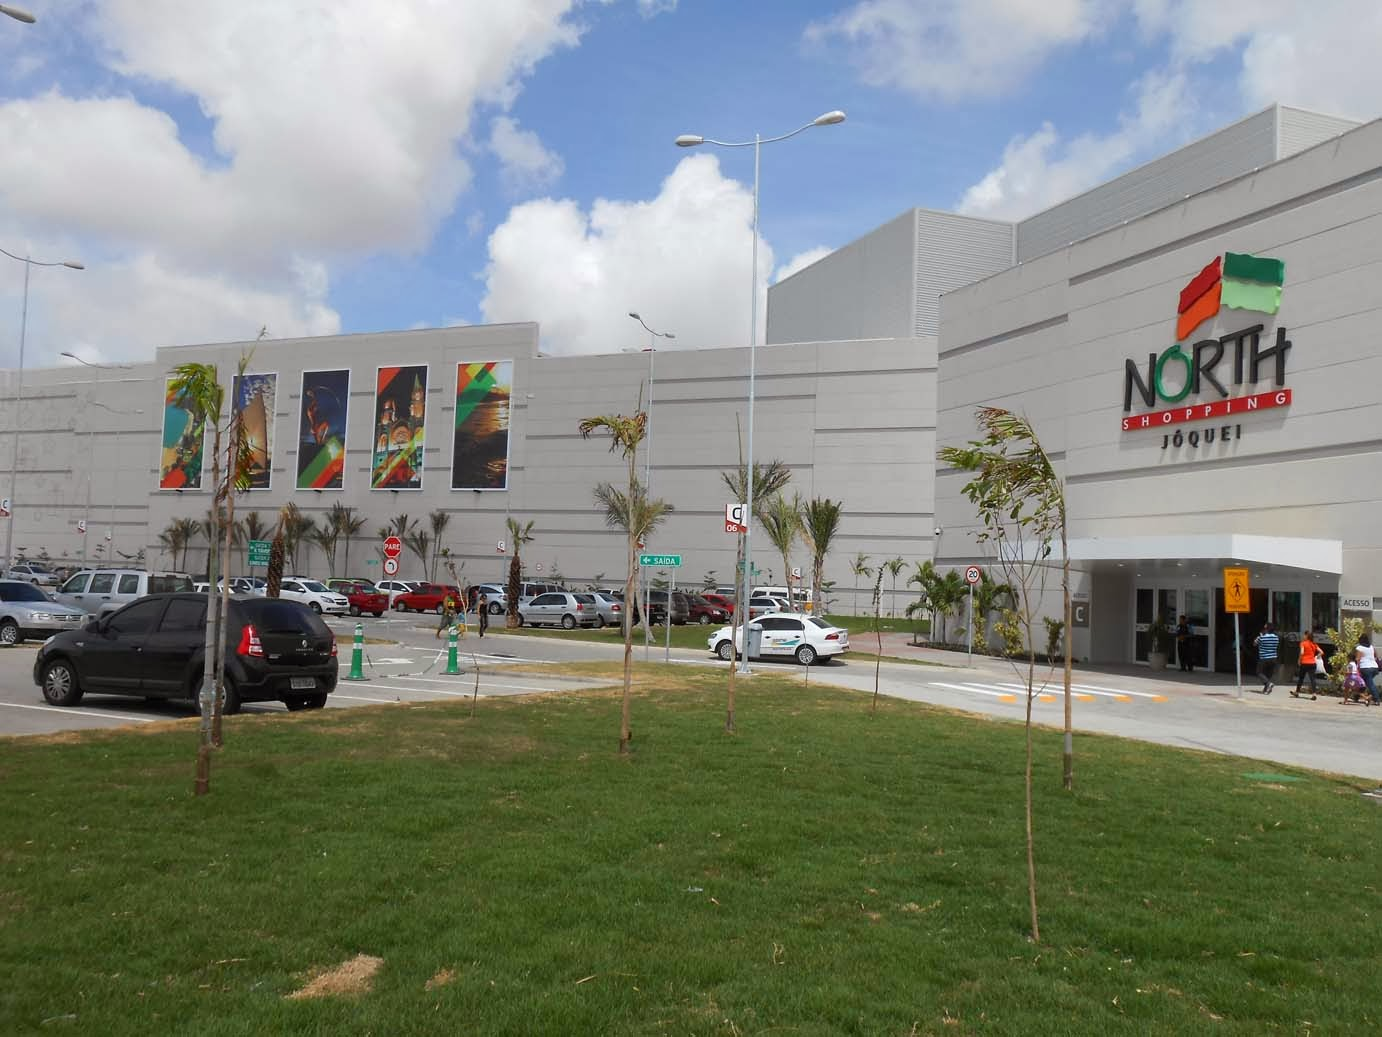 Shopping North Joquei